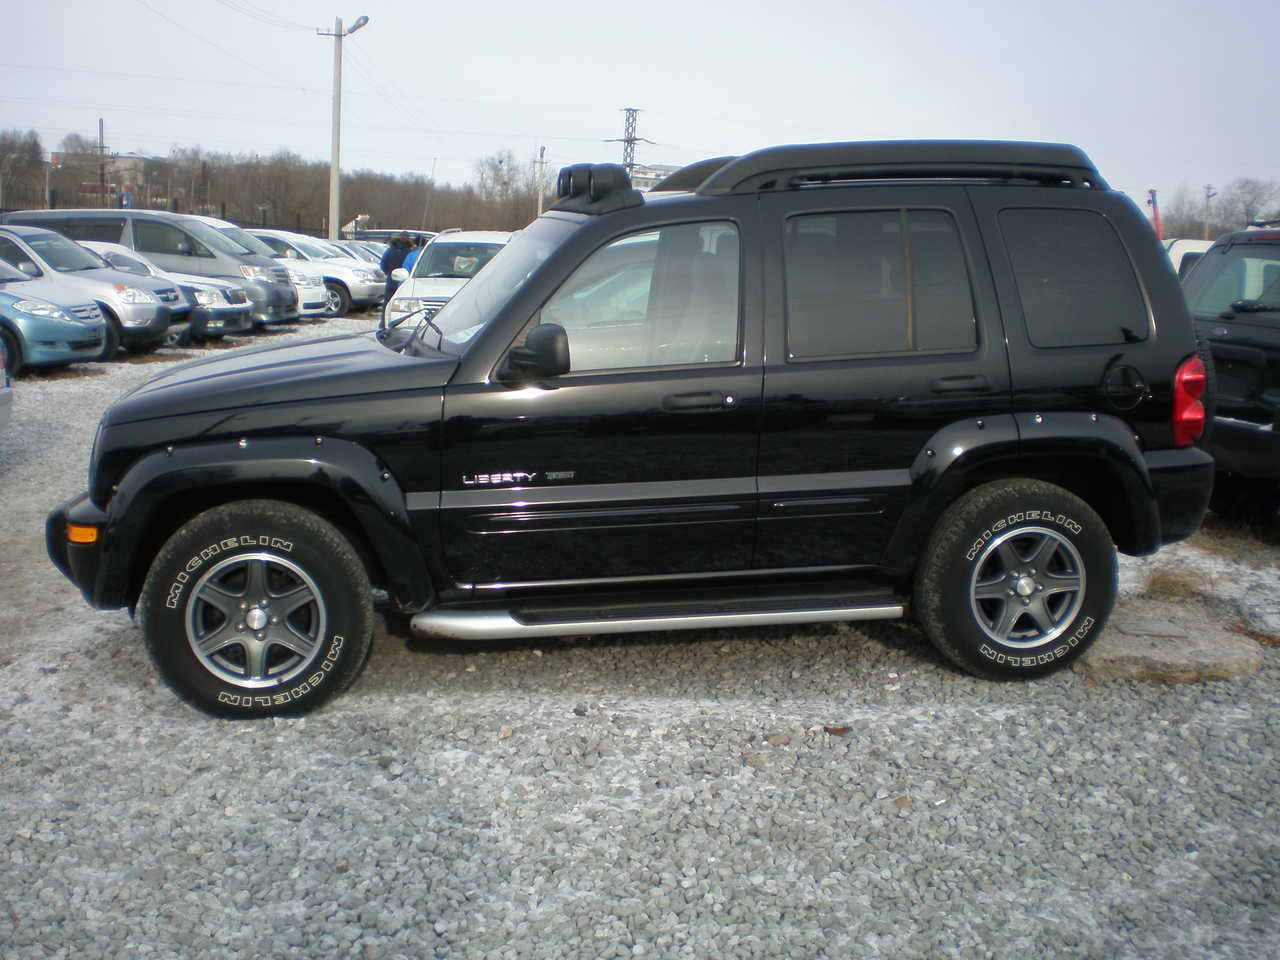 2003 jeep liberty for sale 3700cc gasoline automatic for sale. Black Bedroom Furniture Sets. Home Design Ideas